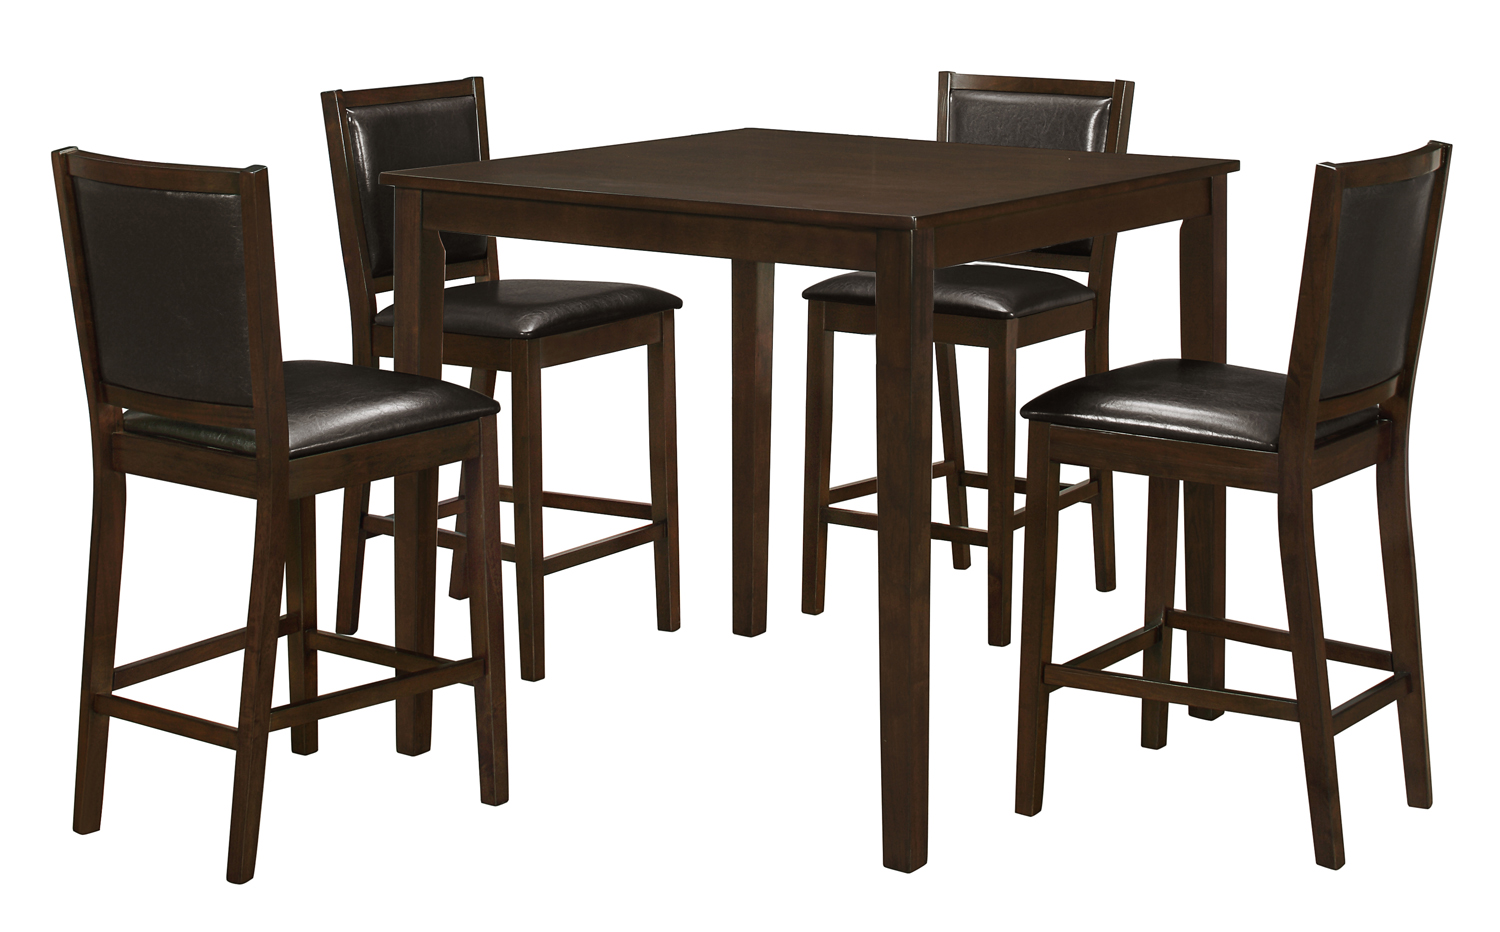 Dining Set - 5Pcs Set / Walnut Veneer Counter Height